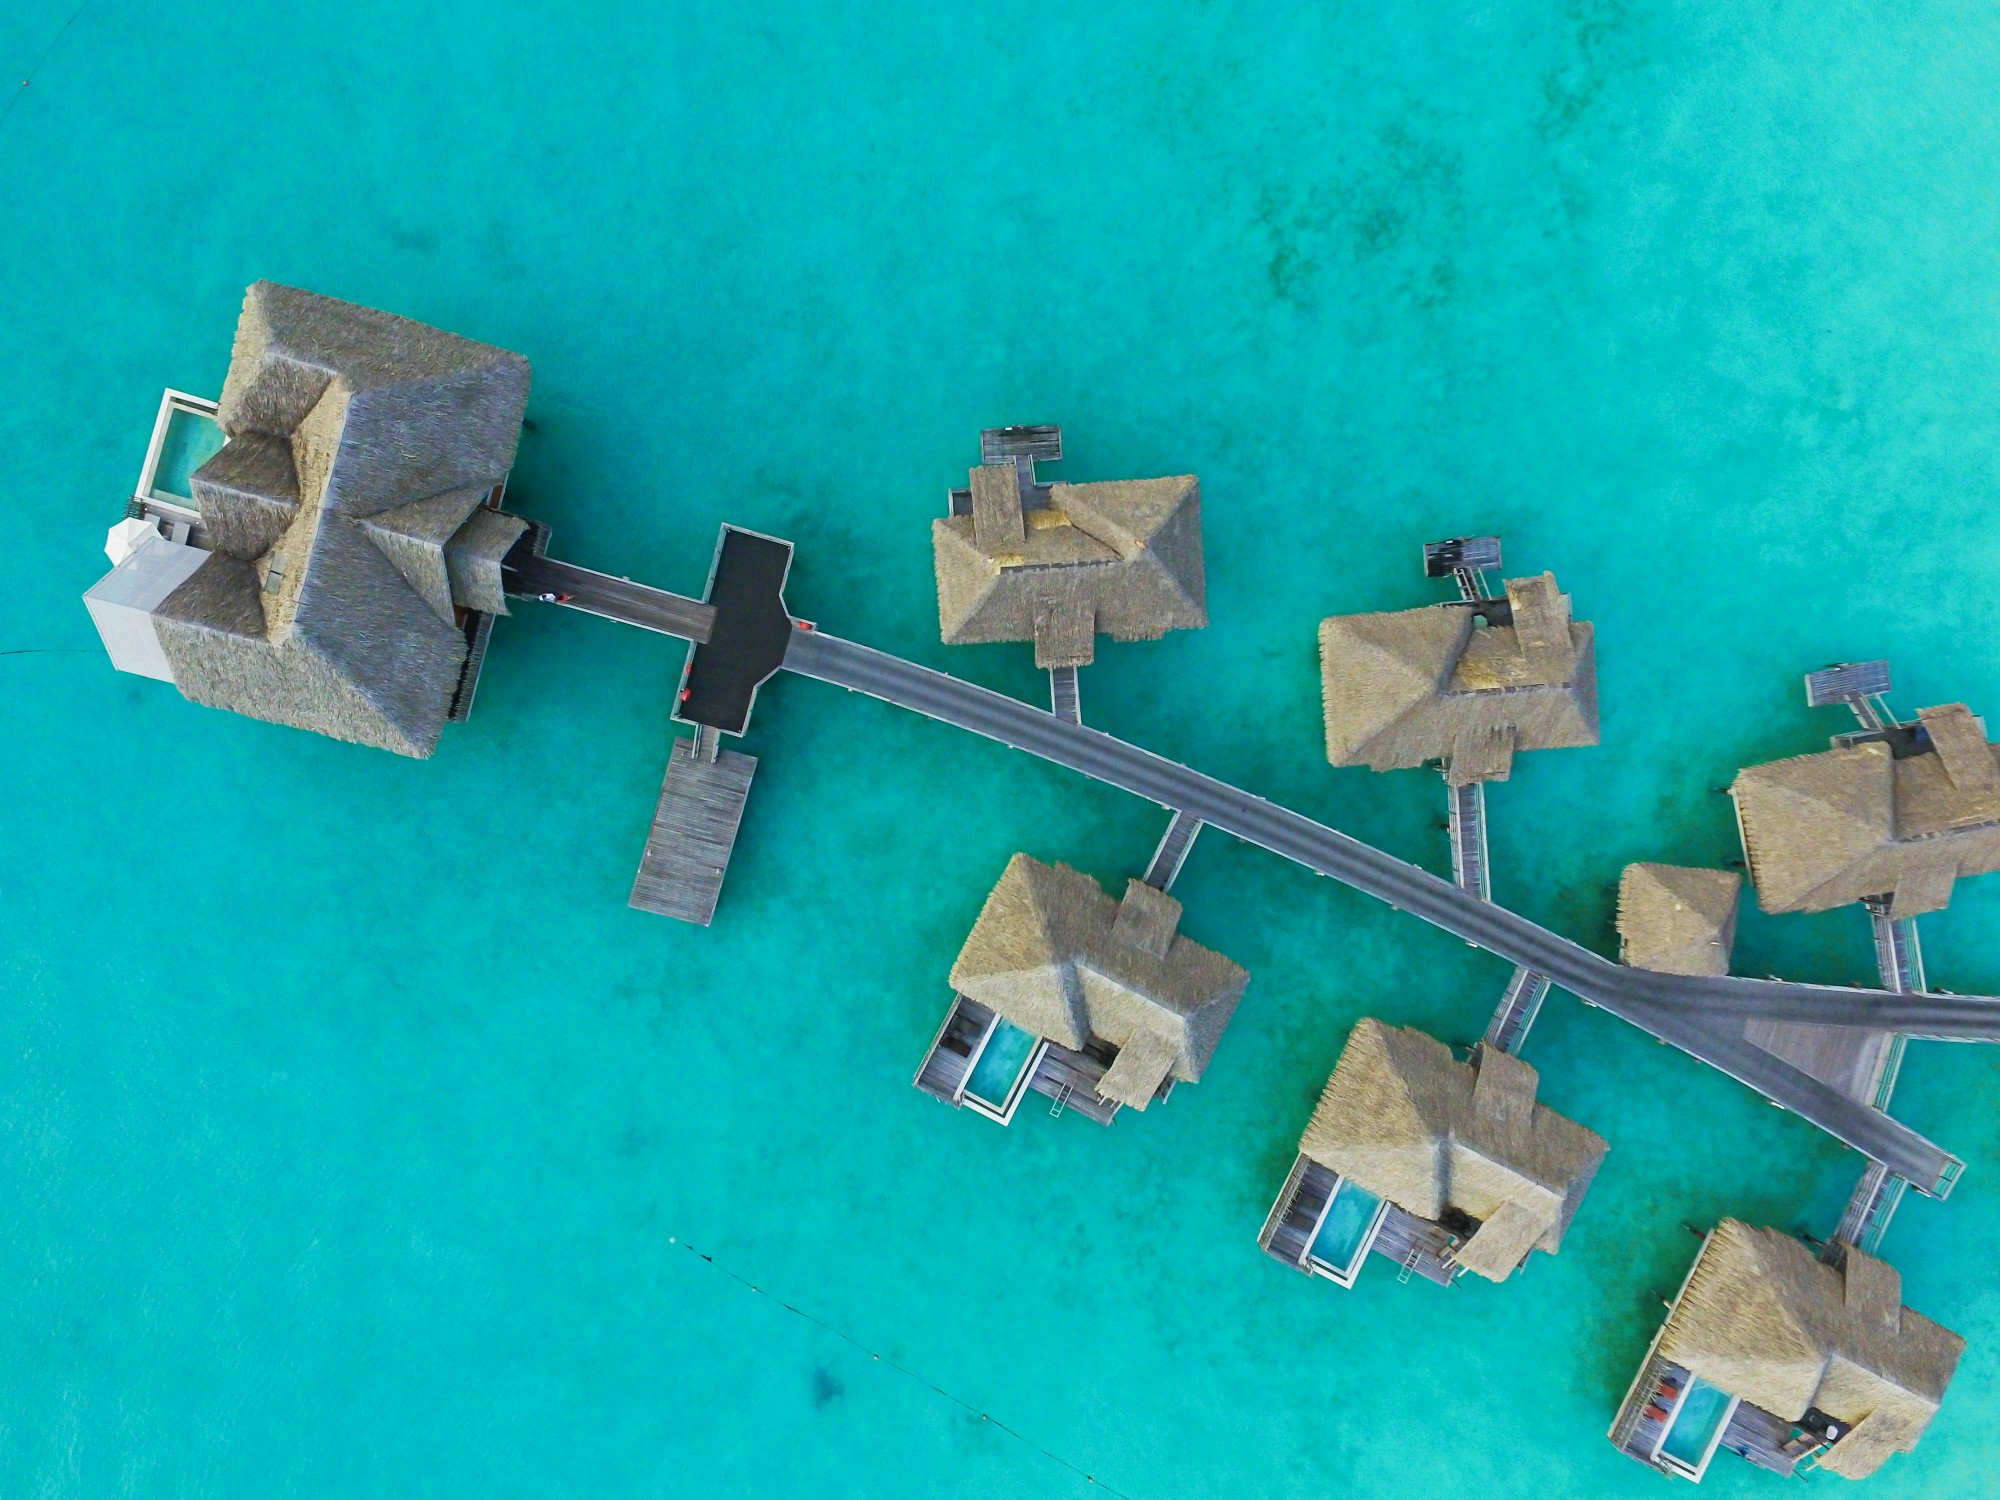 Bora Bora drone shots and a Villa tour at the Intercontinental Hotel Thalasso ! Lauren Lindmark is a fashion and travel blogger! See travel photos of the beautiful blue ocean in Bora Bora, French Polynesia on fashion blog daily dose of charm by lauren Lindmark